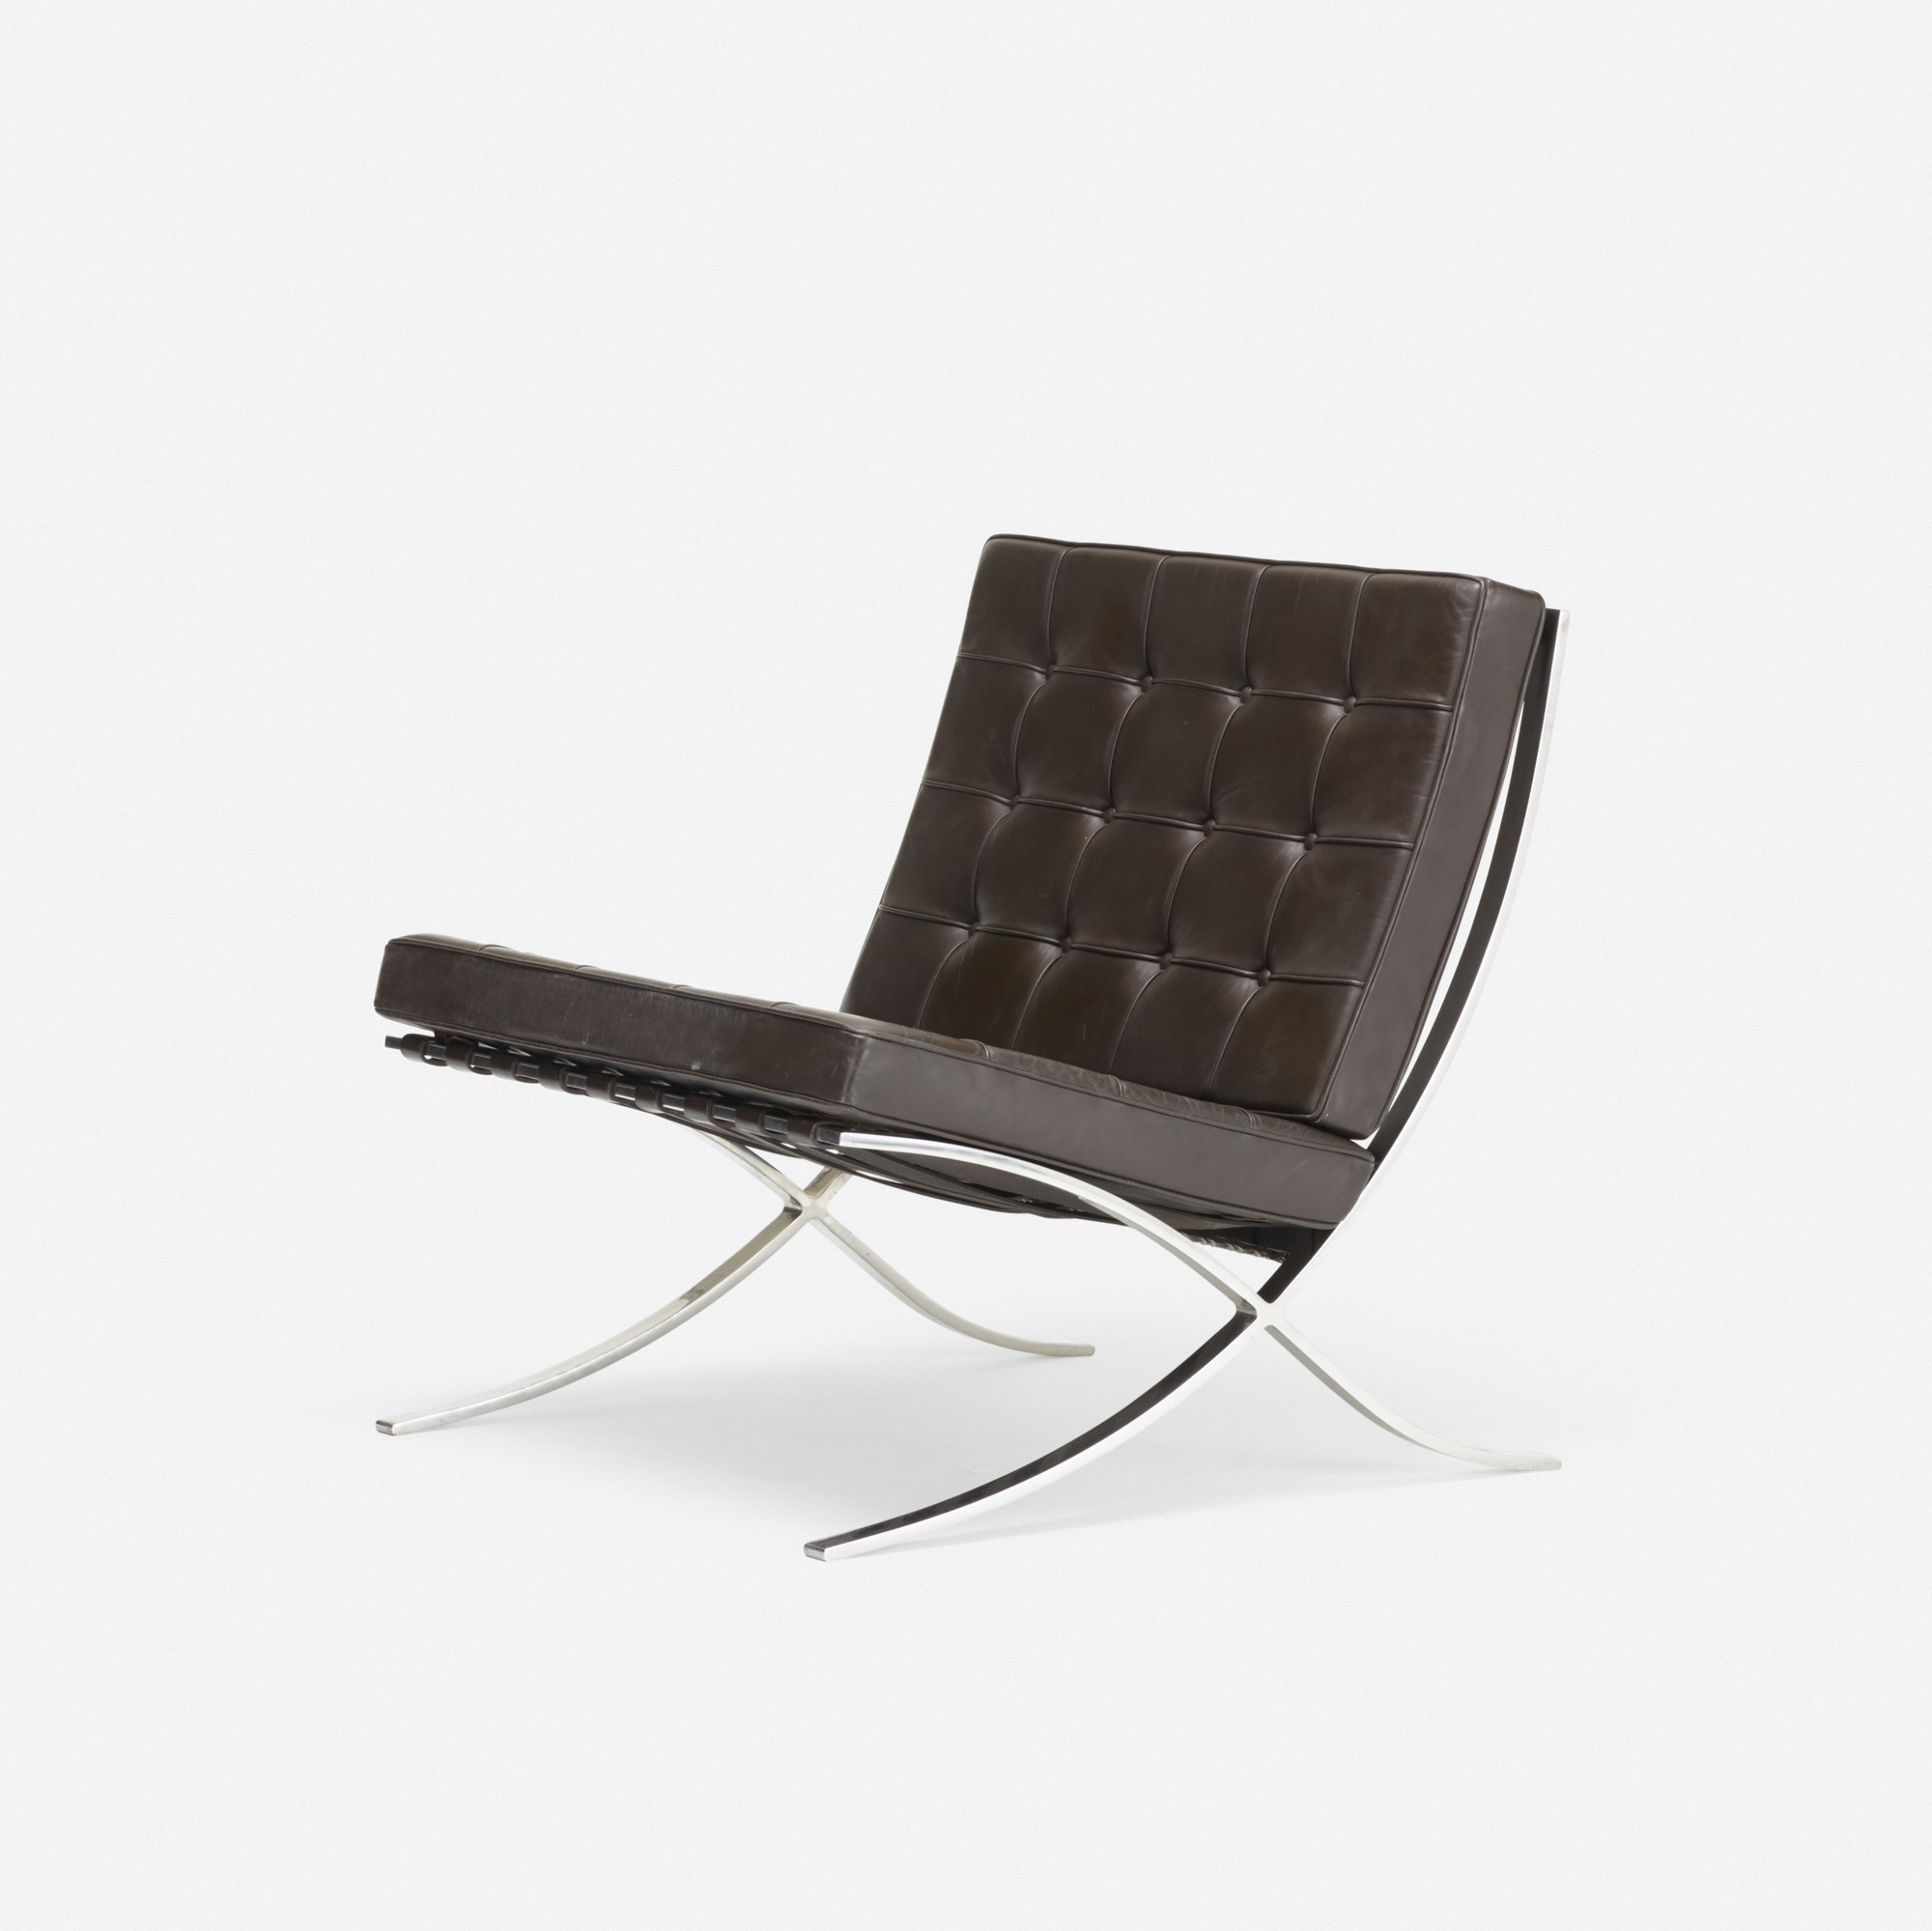 230: Ludwig Mies van der Rohe / pair of Barcelona chairs and ottoman (3 of 3)